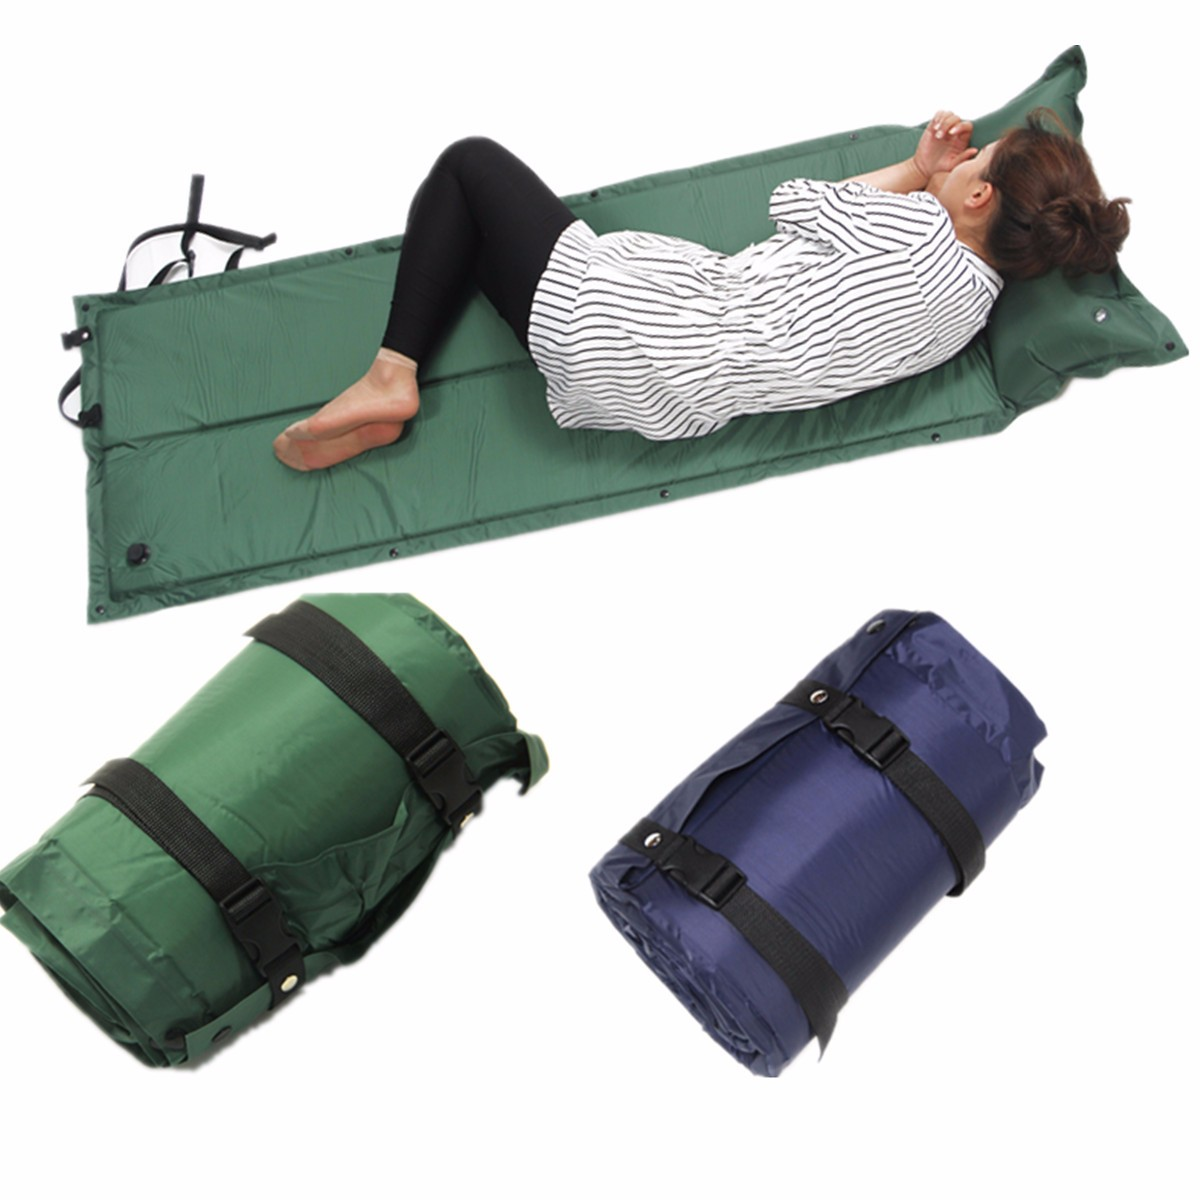 IPRee 183x60x2.5cm Self Inflatable Air Mattress Camping